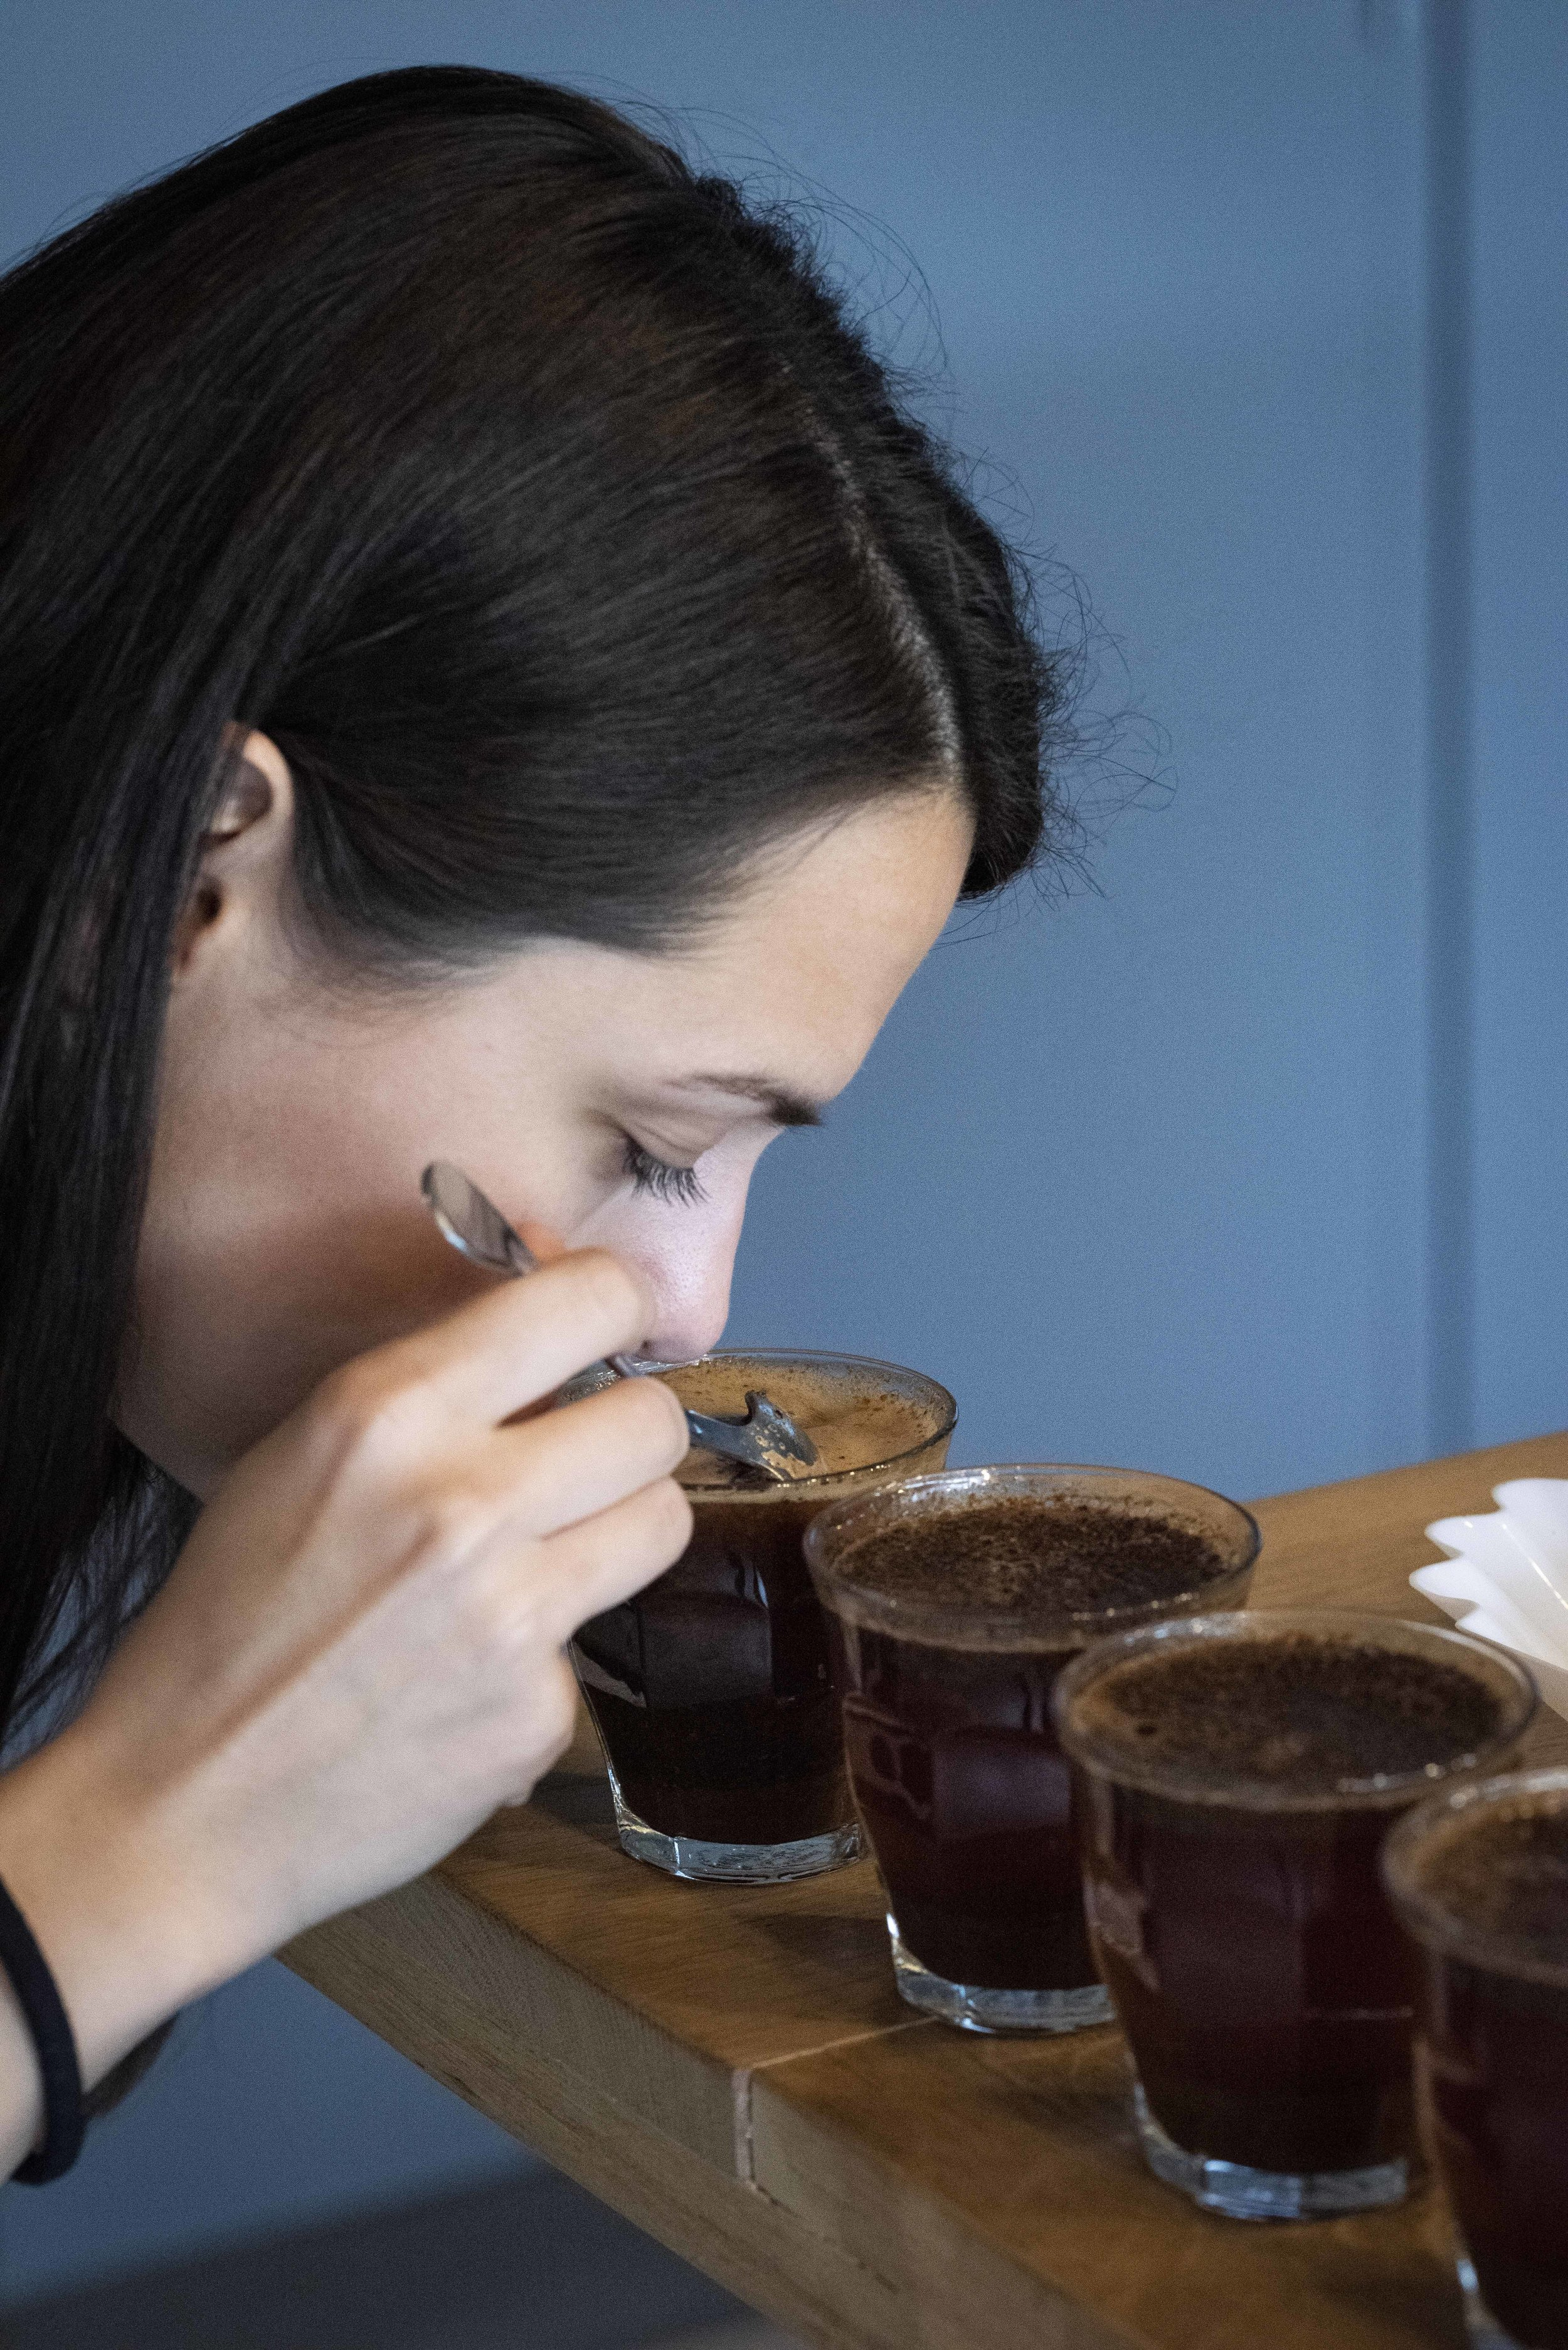 Cupping of 80plus specialty coffee. Photo © Barcelona Food Experience.